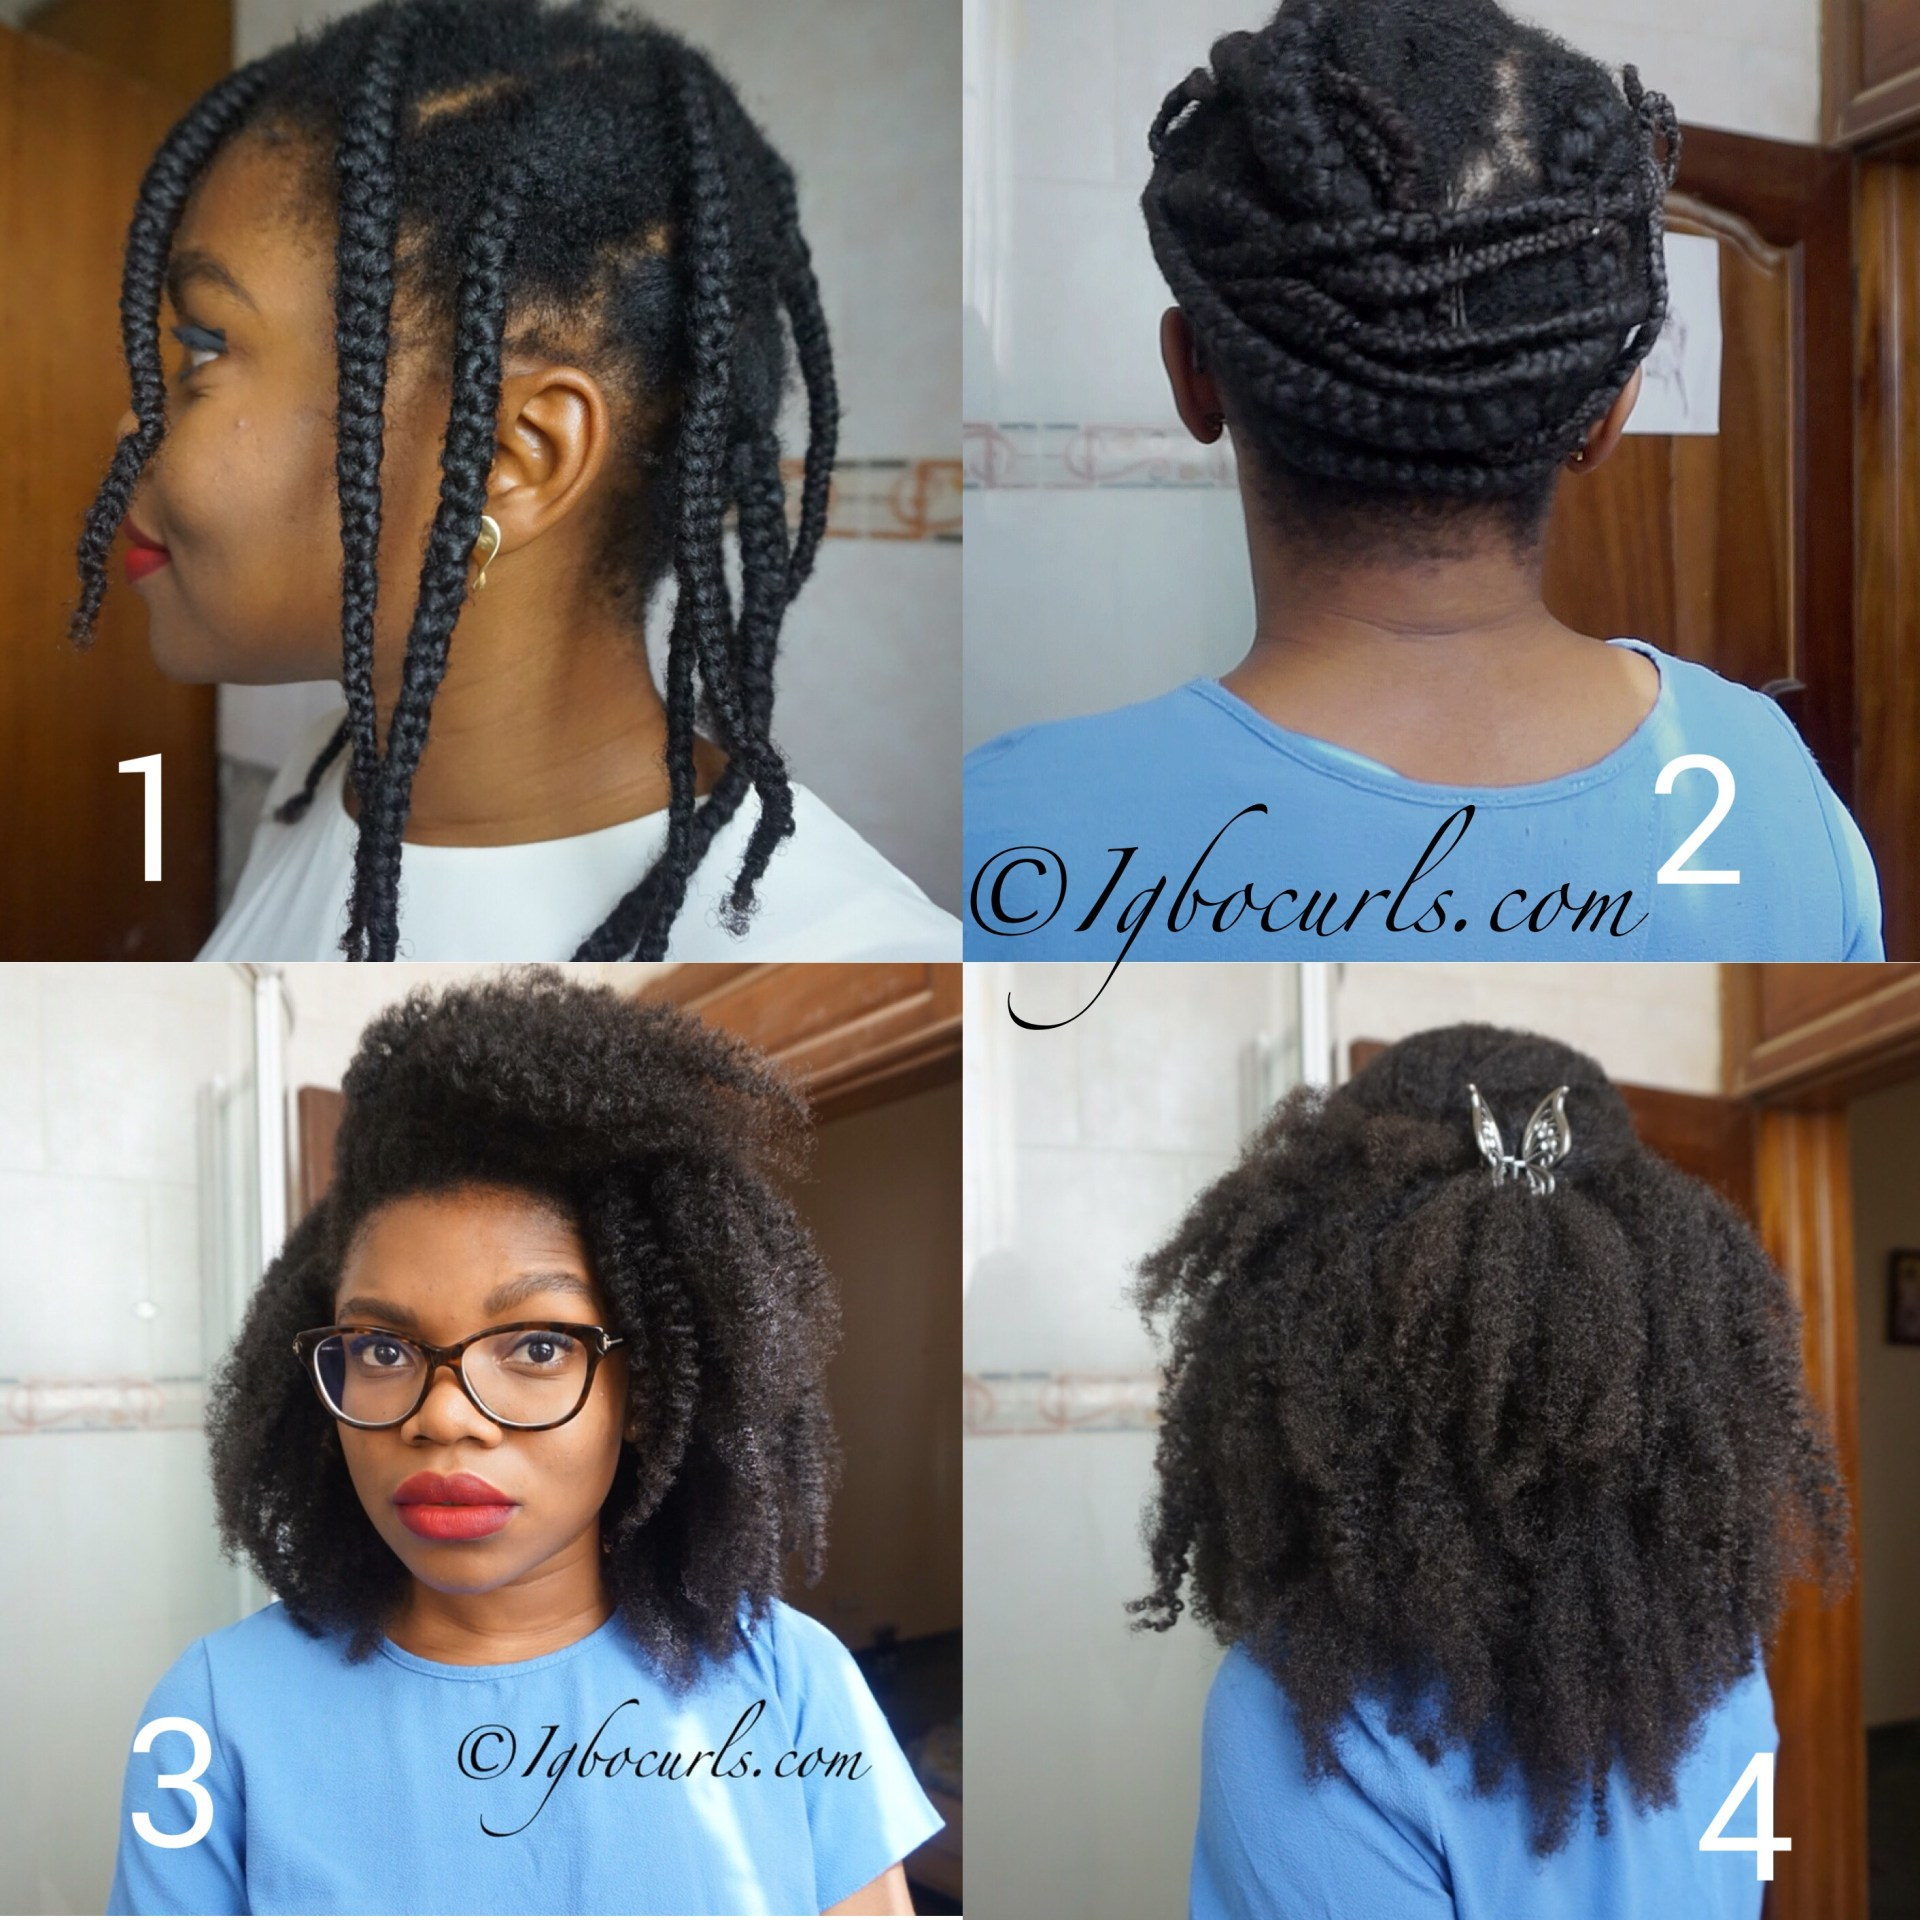 How To Stretch Natural Hair Without Heat Damage